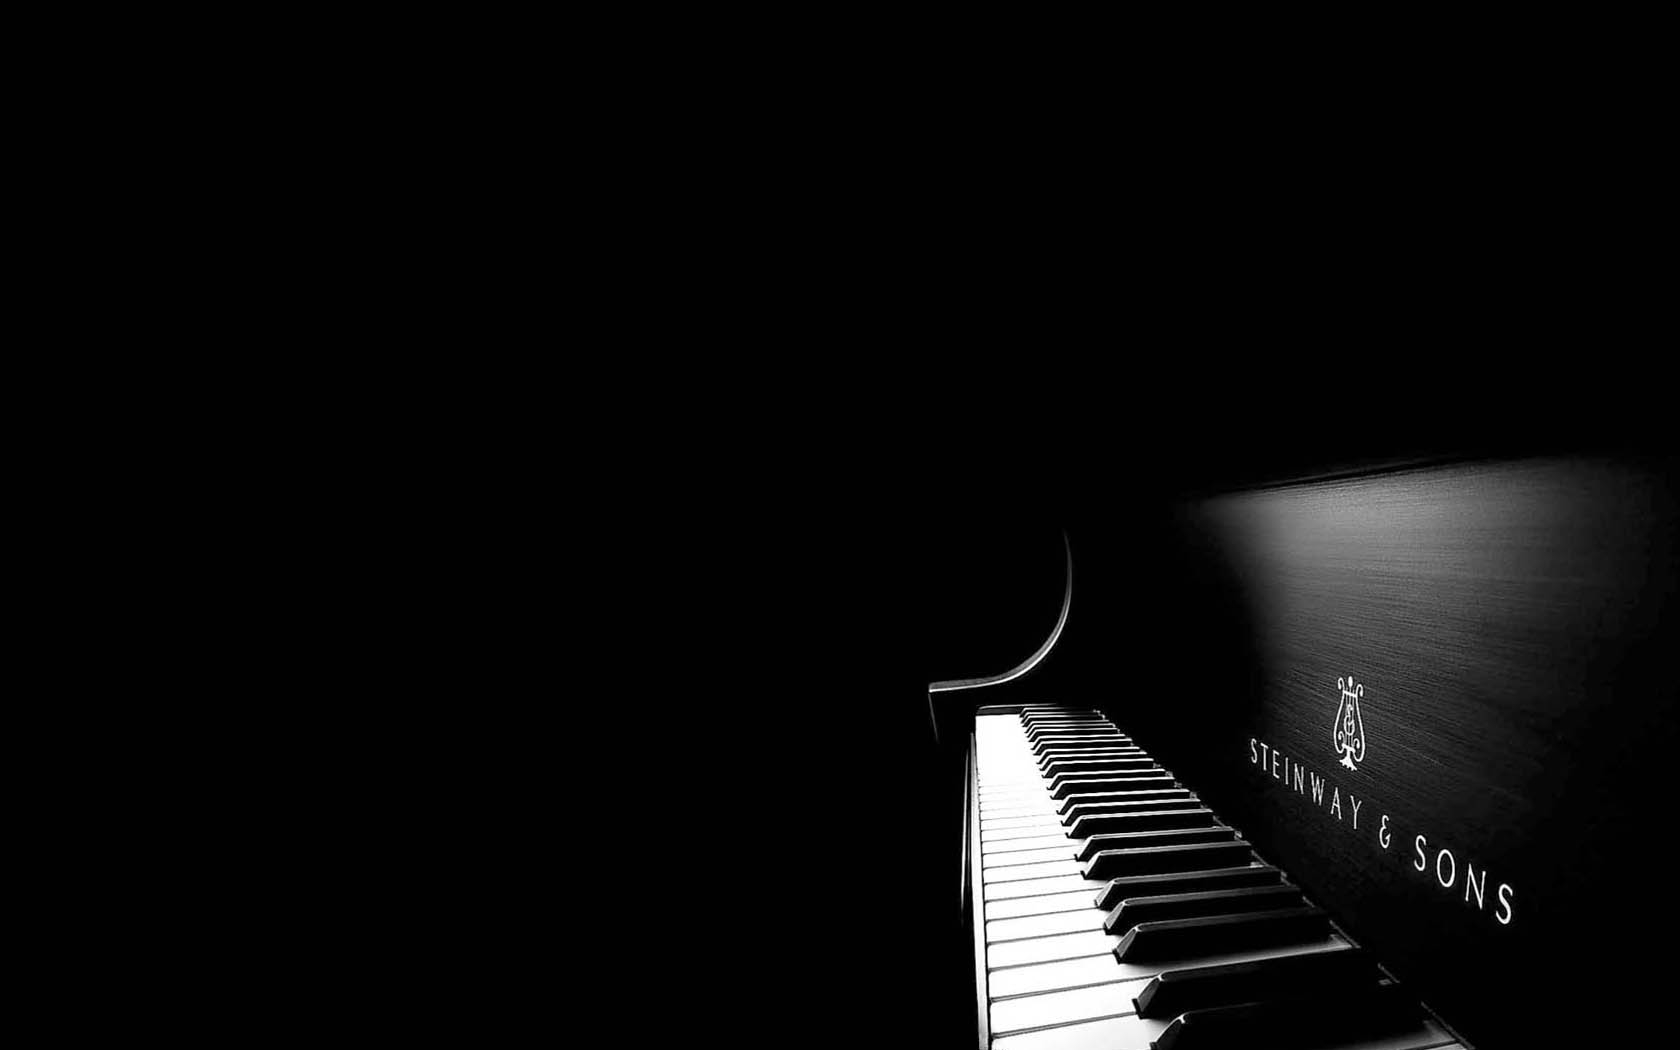 Steinway Sons Wallpaper and Background Image 1680x1050 ID 1680x1050